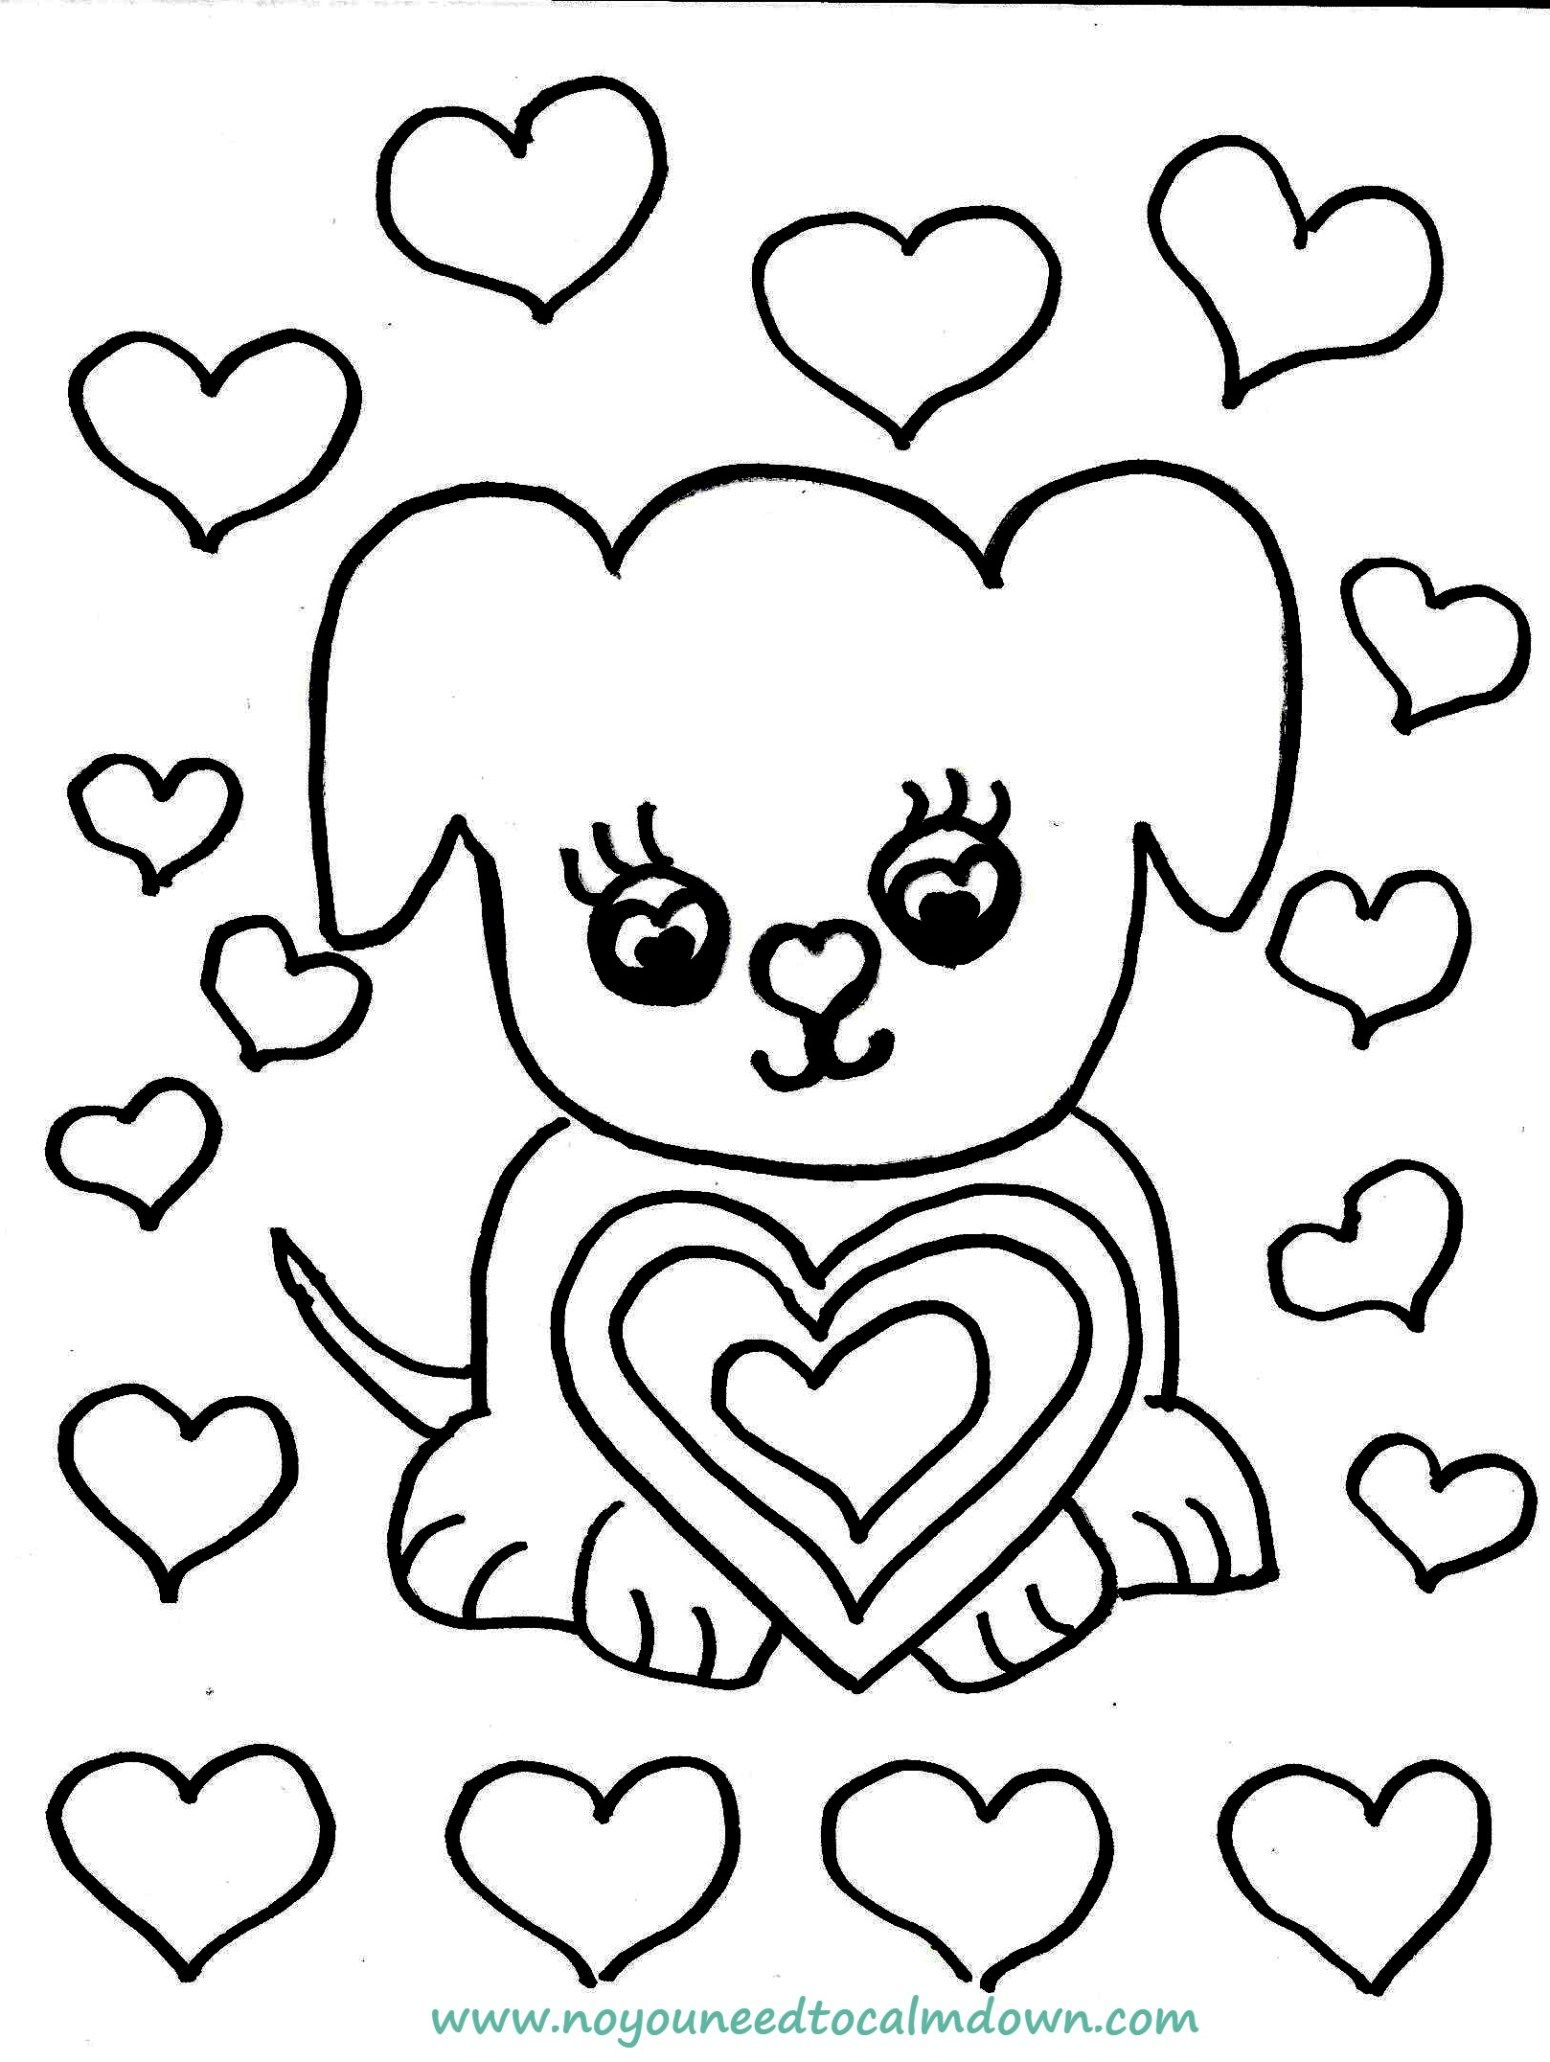 Cute Dog Valentine S Day Coloring Page Free Printable No You Need To Calm Down Valentines Day Coloring Page Valentine Coloring Sheets Valentine Coloring Coloring Home